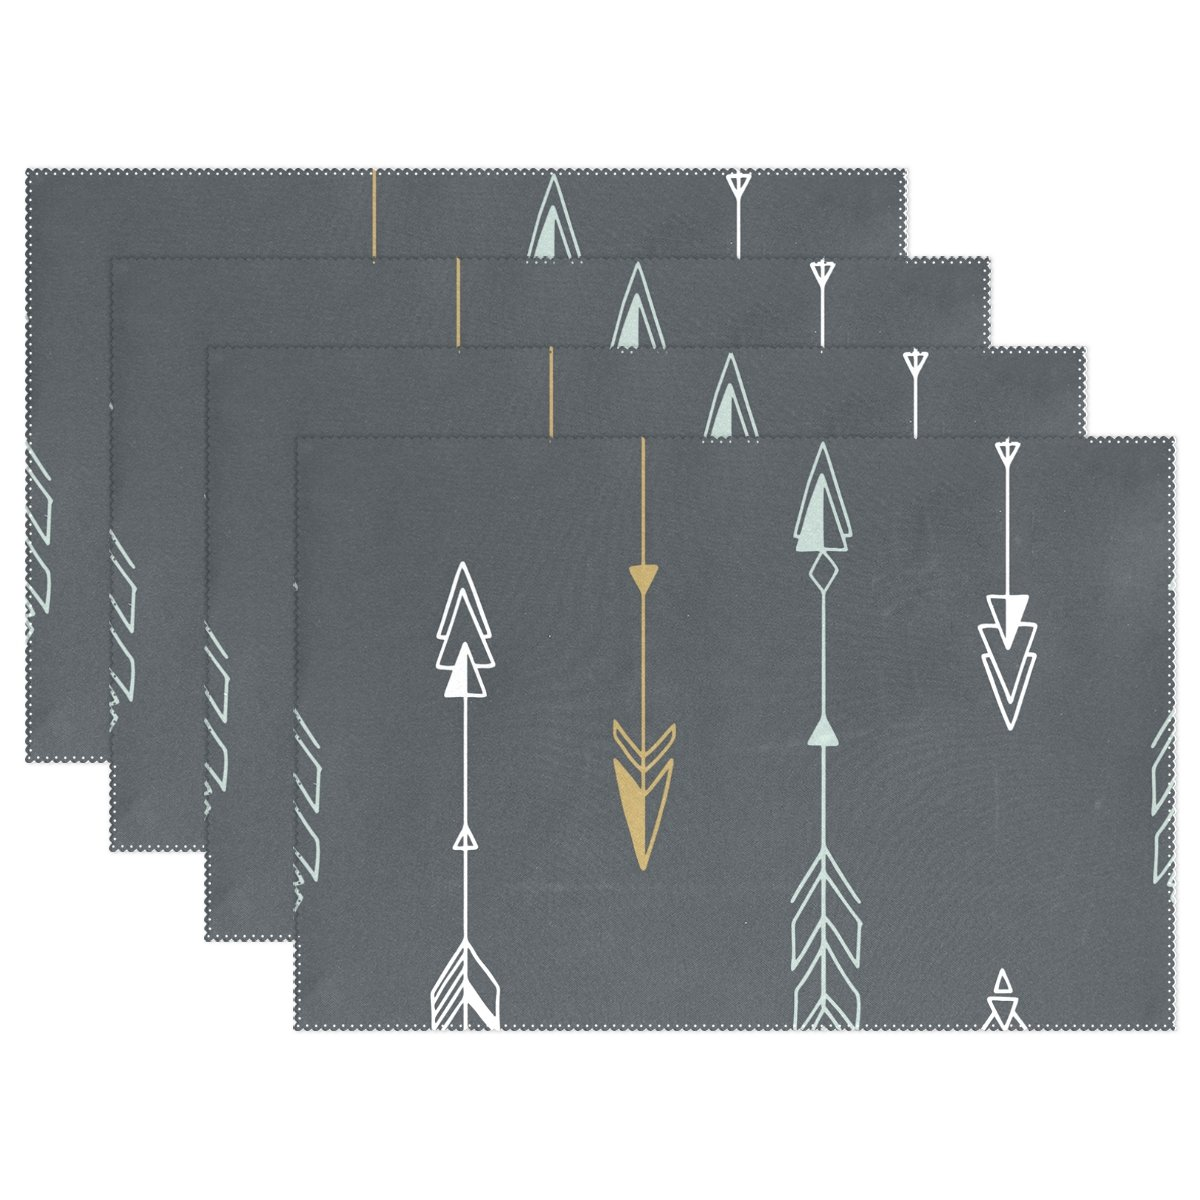 ALAZA Geometric Tribal Arrows Placemats Heat-resistant Washable Table Mats 12 X 18 Inch Placemats for Family Kitchen Hotel Coffee Shop Dinning Restaurant, Set of 6